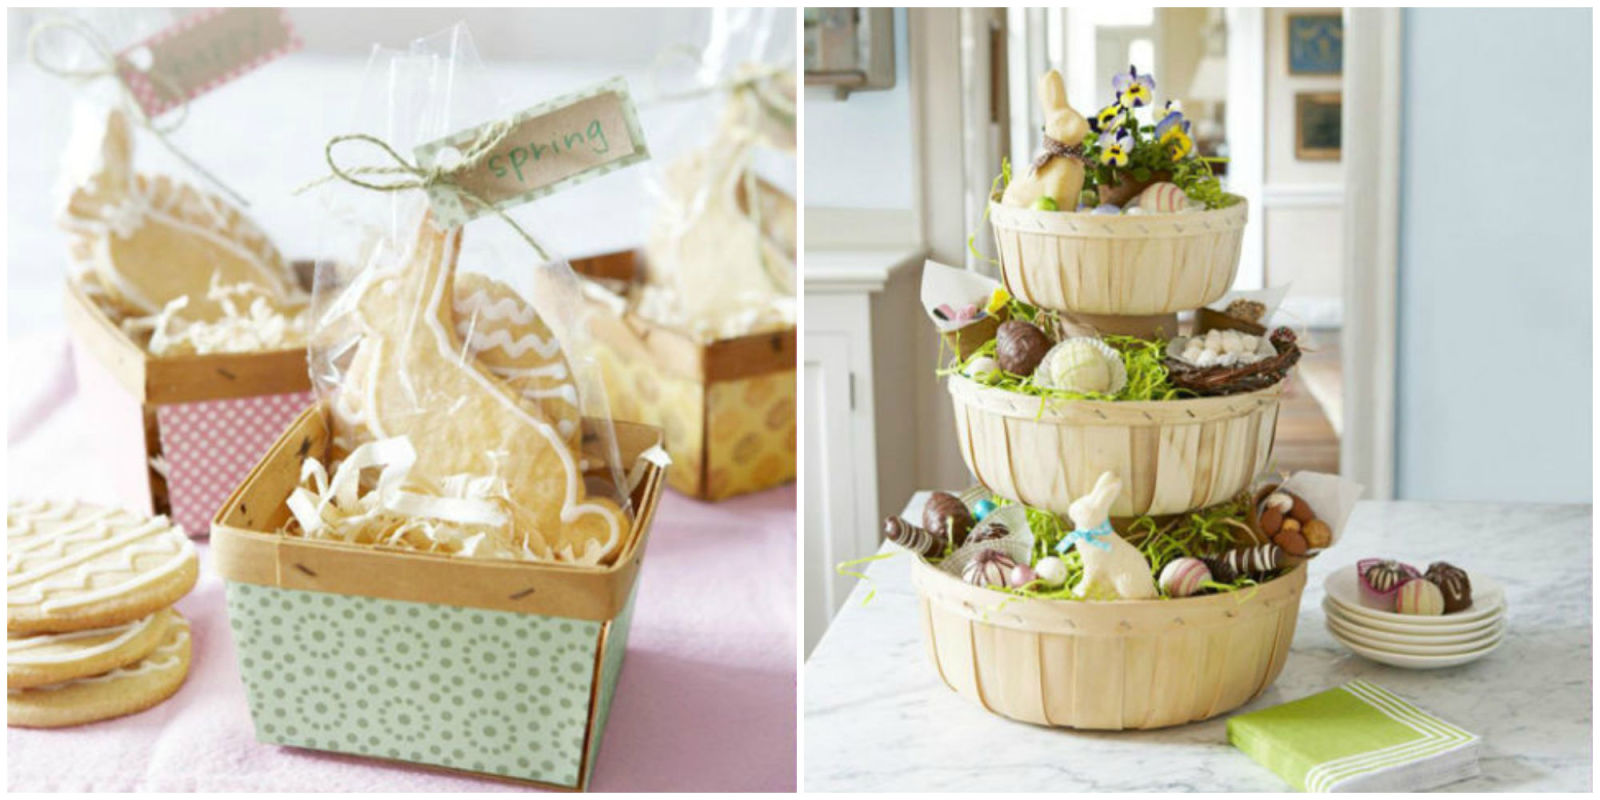 35 diy easter basket ideas unique homemade easter baskets good 35 diy easter basket ideas unique homemade easter baskets good housekeeping negle Choice Image